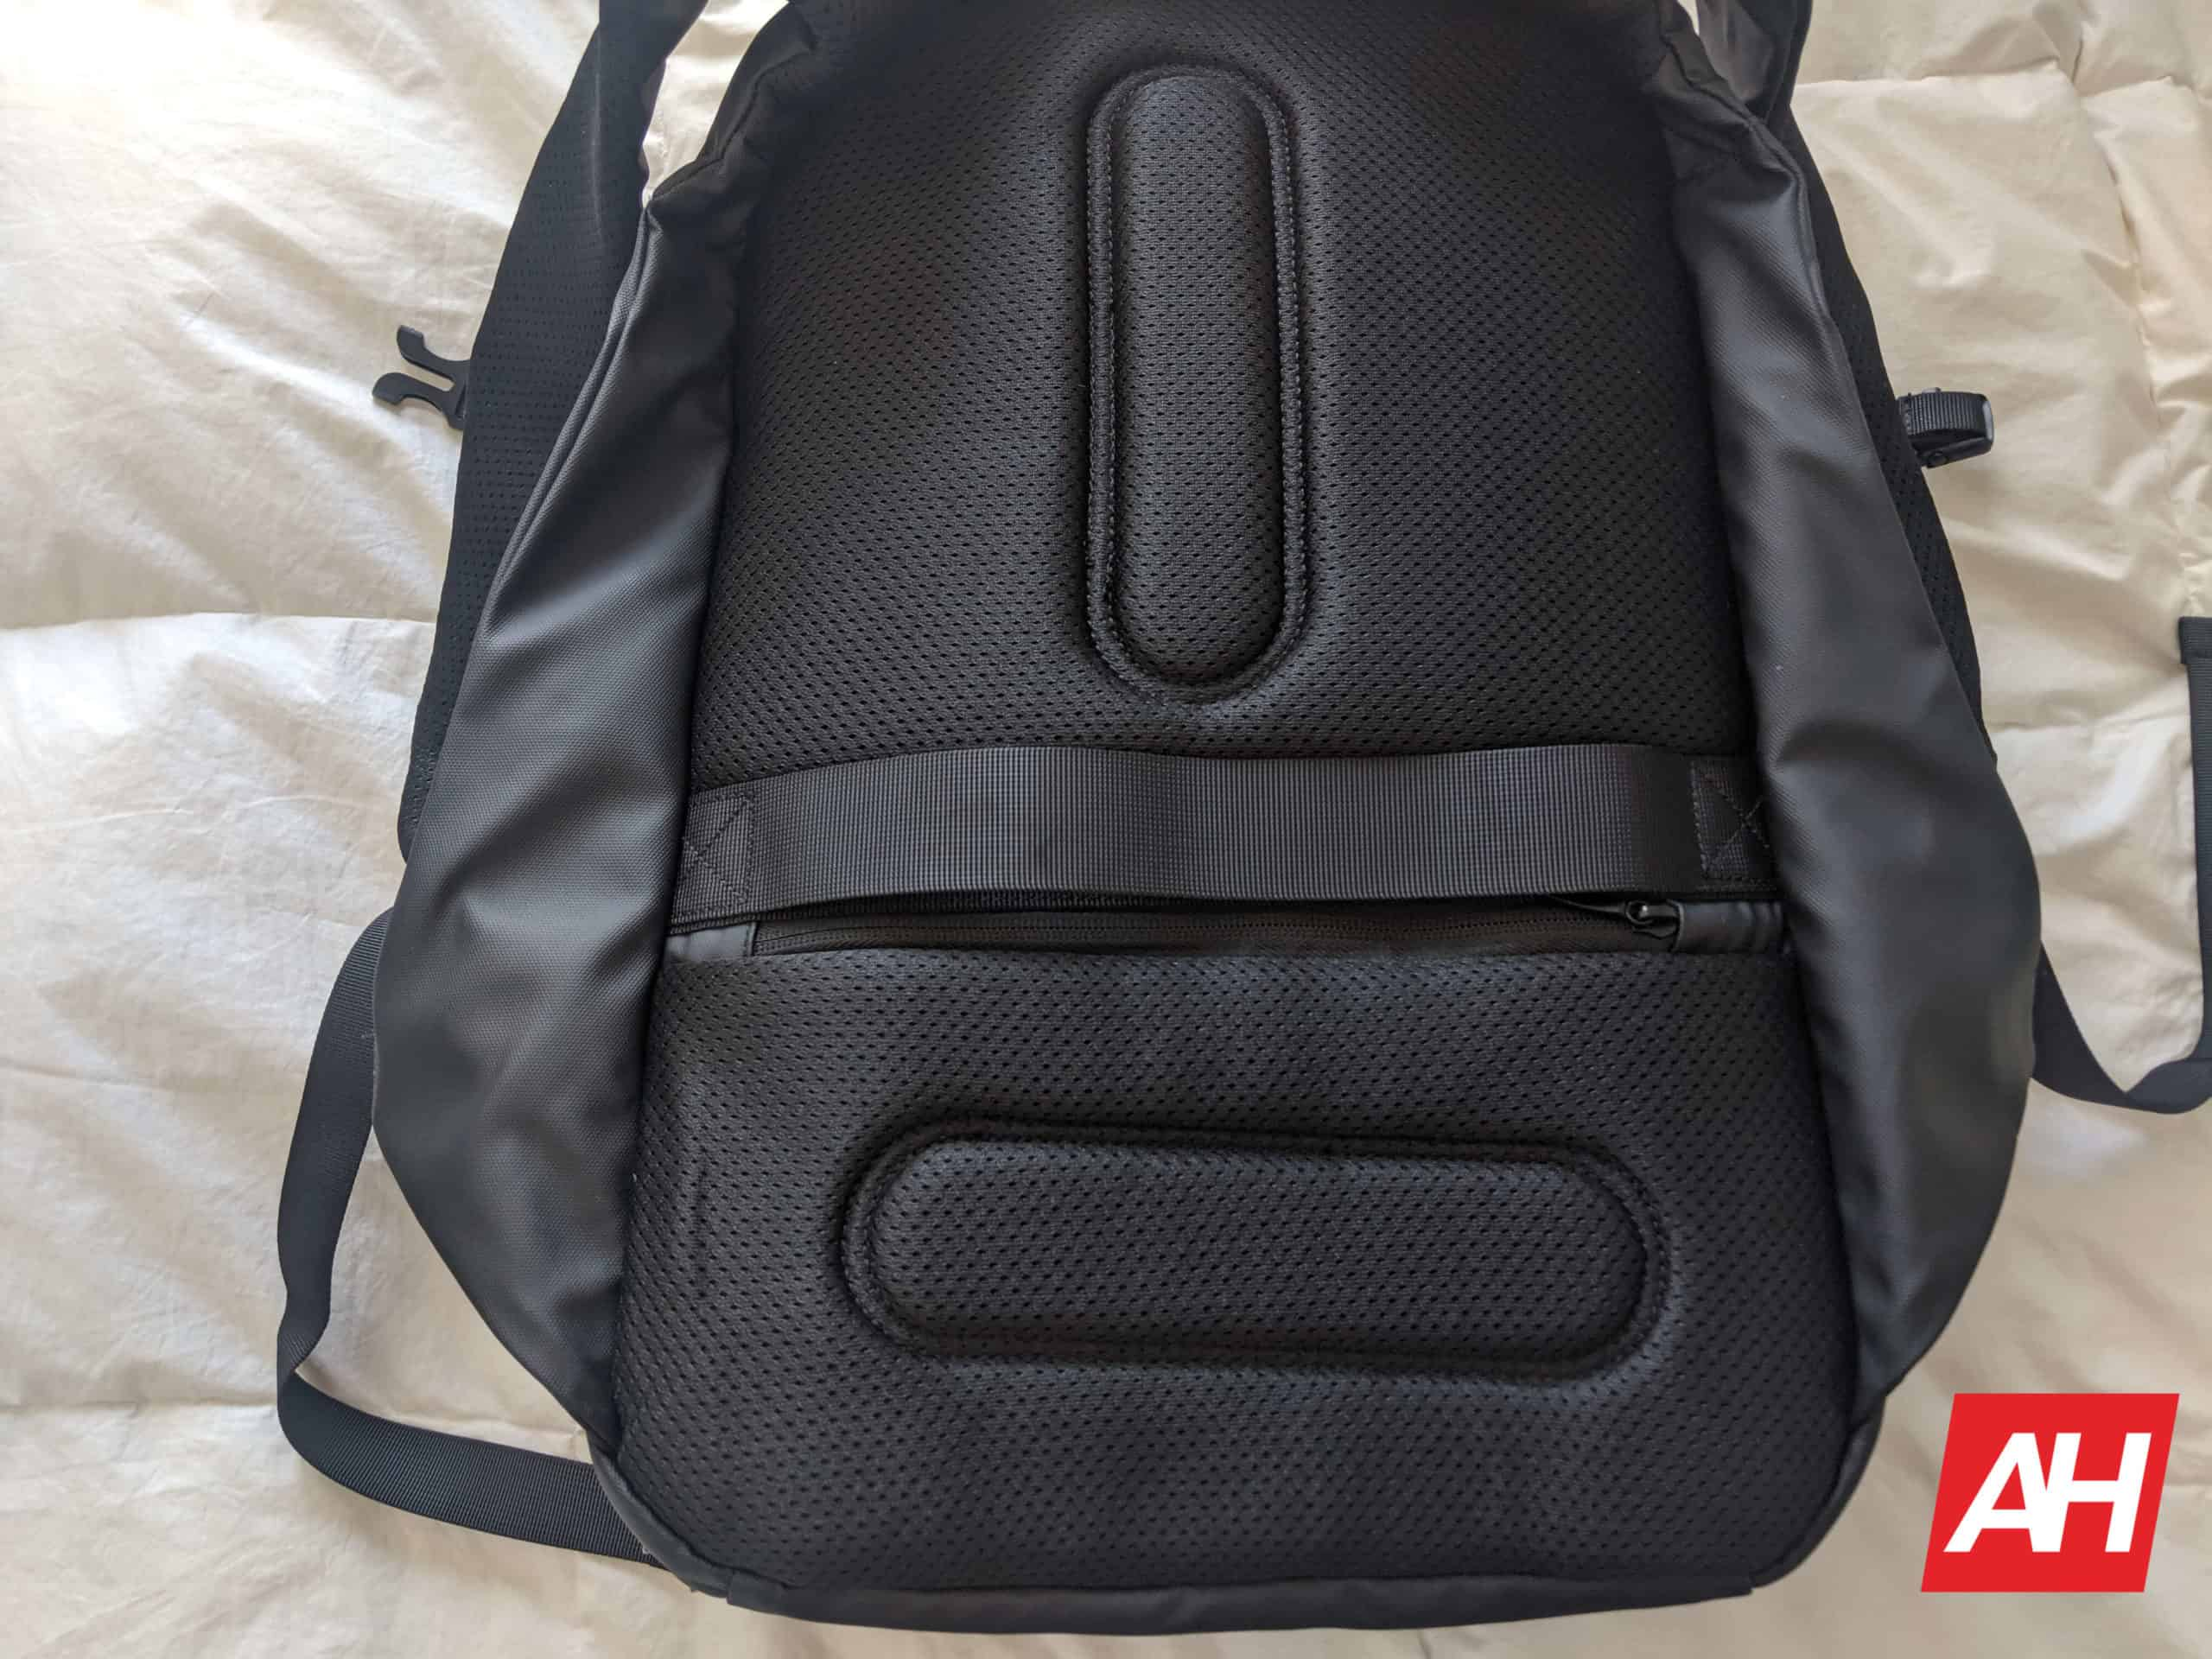 Nayo Smart Almighty Backpack Review 15